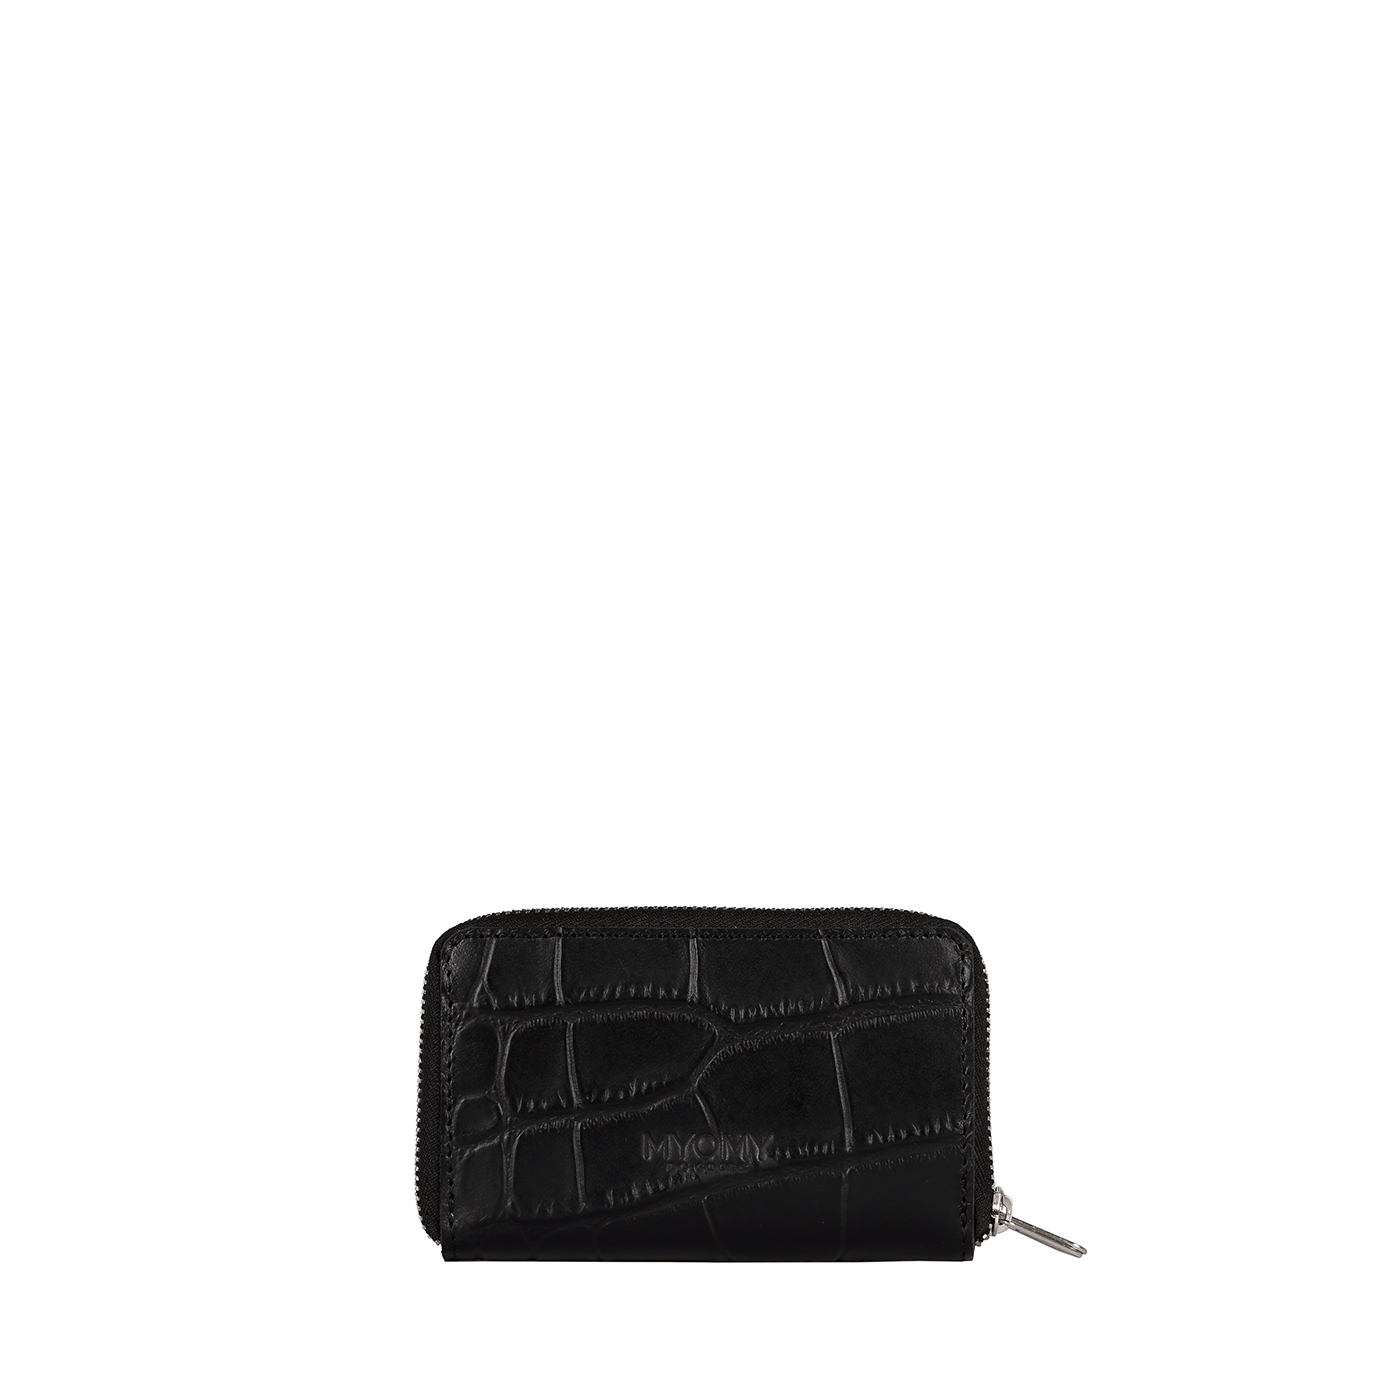 MY CARRY BAG Wallet Medium - croco black